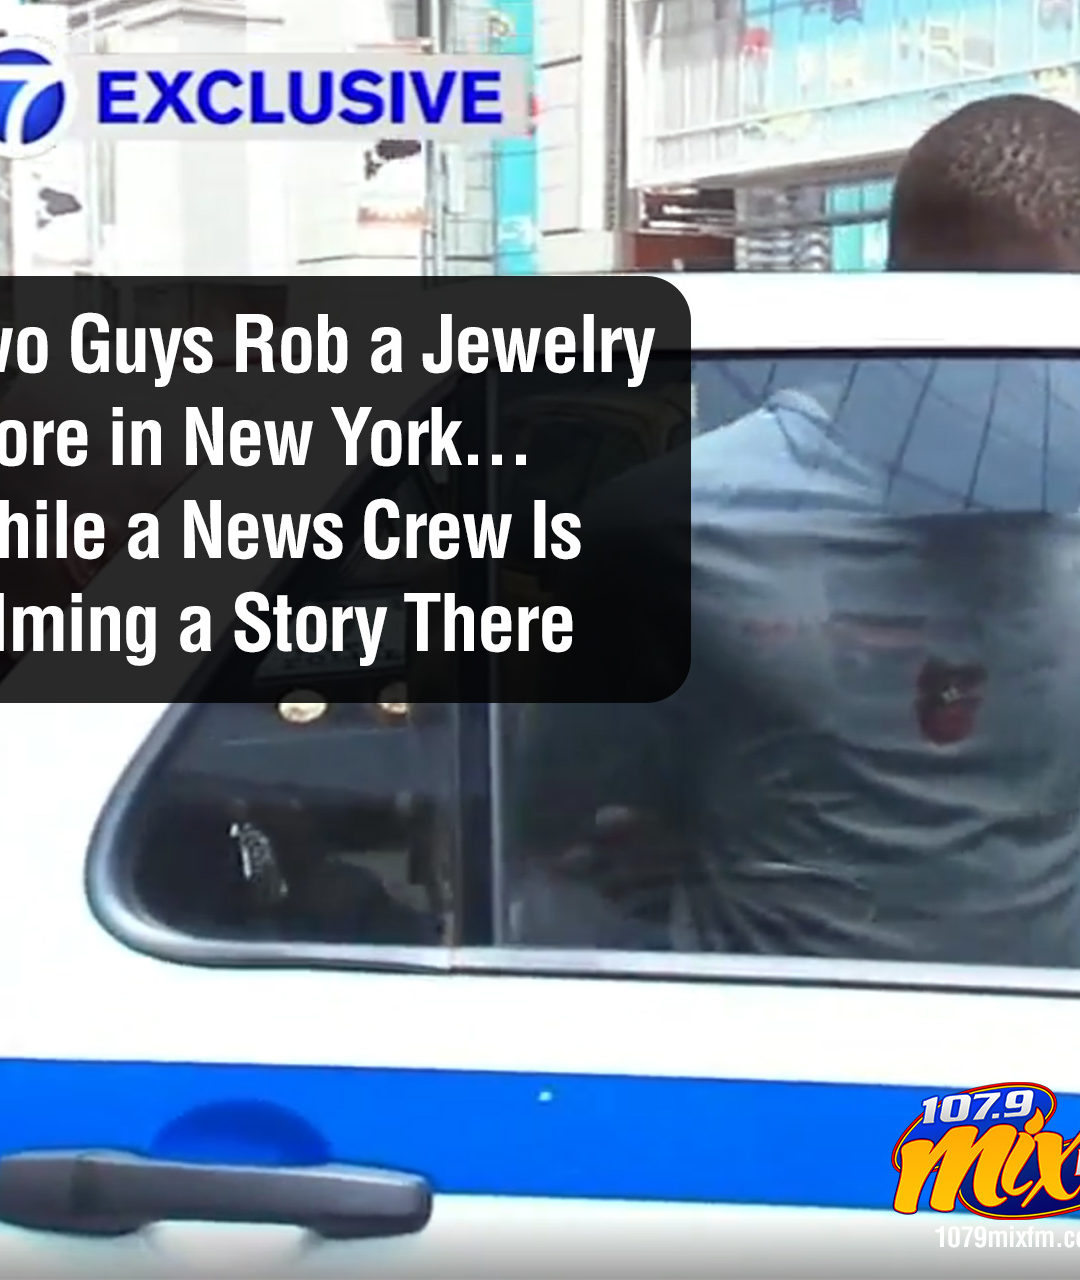 Two Guys Rob a Jewelry Store in New York… While a News Crew Is Filming a Story There